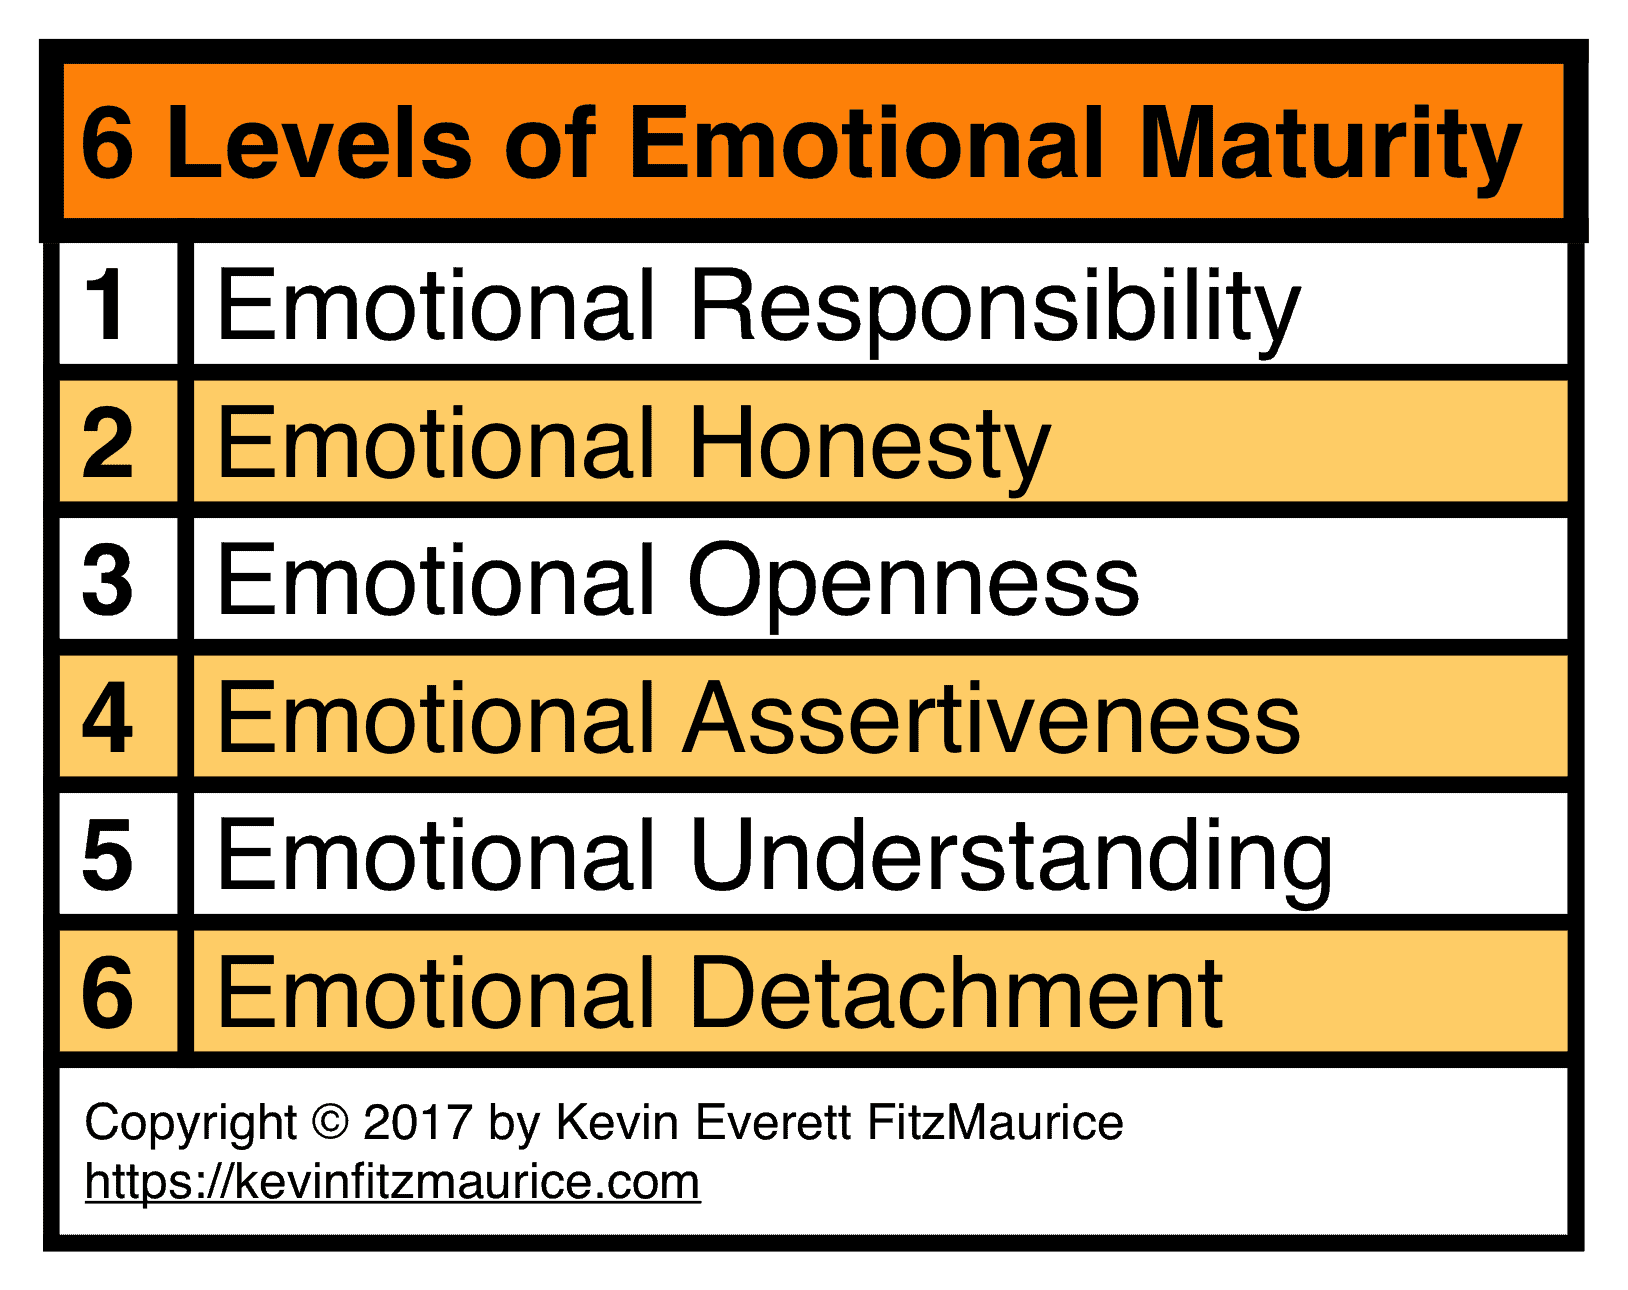 6 Levels of Emotional Maturity